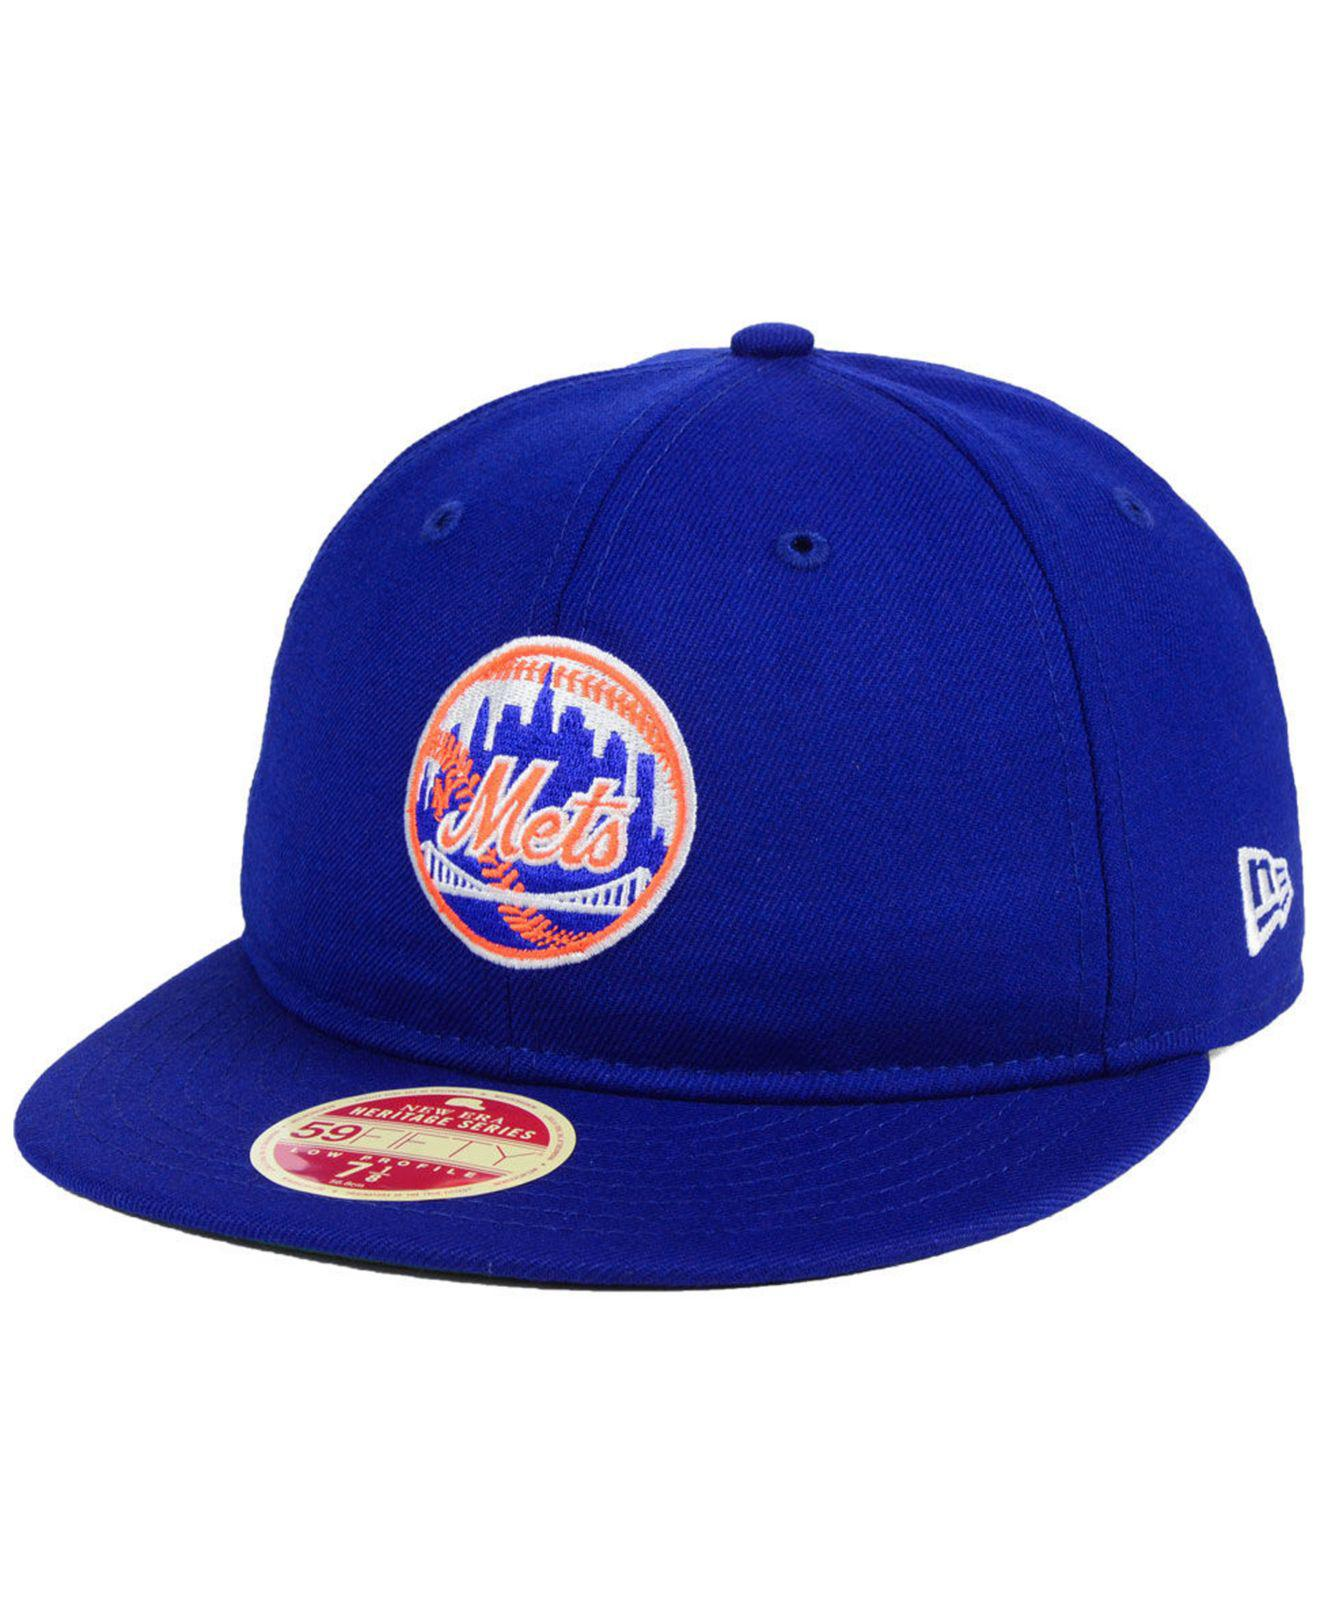 45712707f57 KTZ. Men s Blue New York Mets Heritage Retro Classic 59fifty Fitted Cap